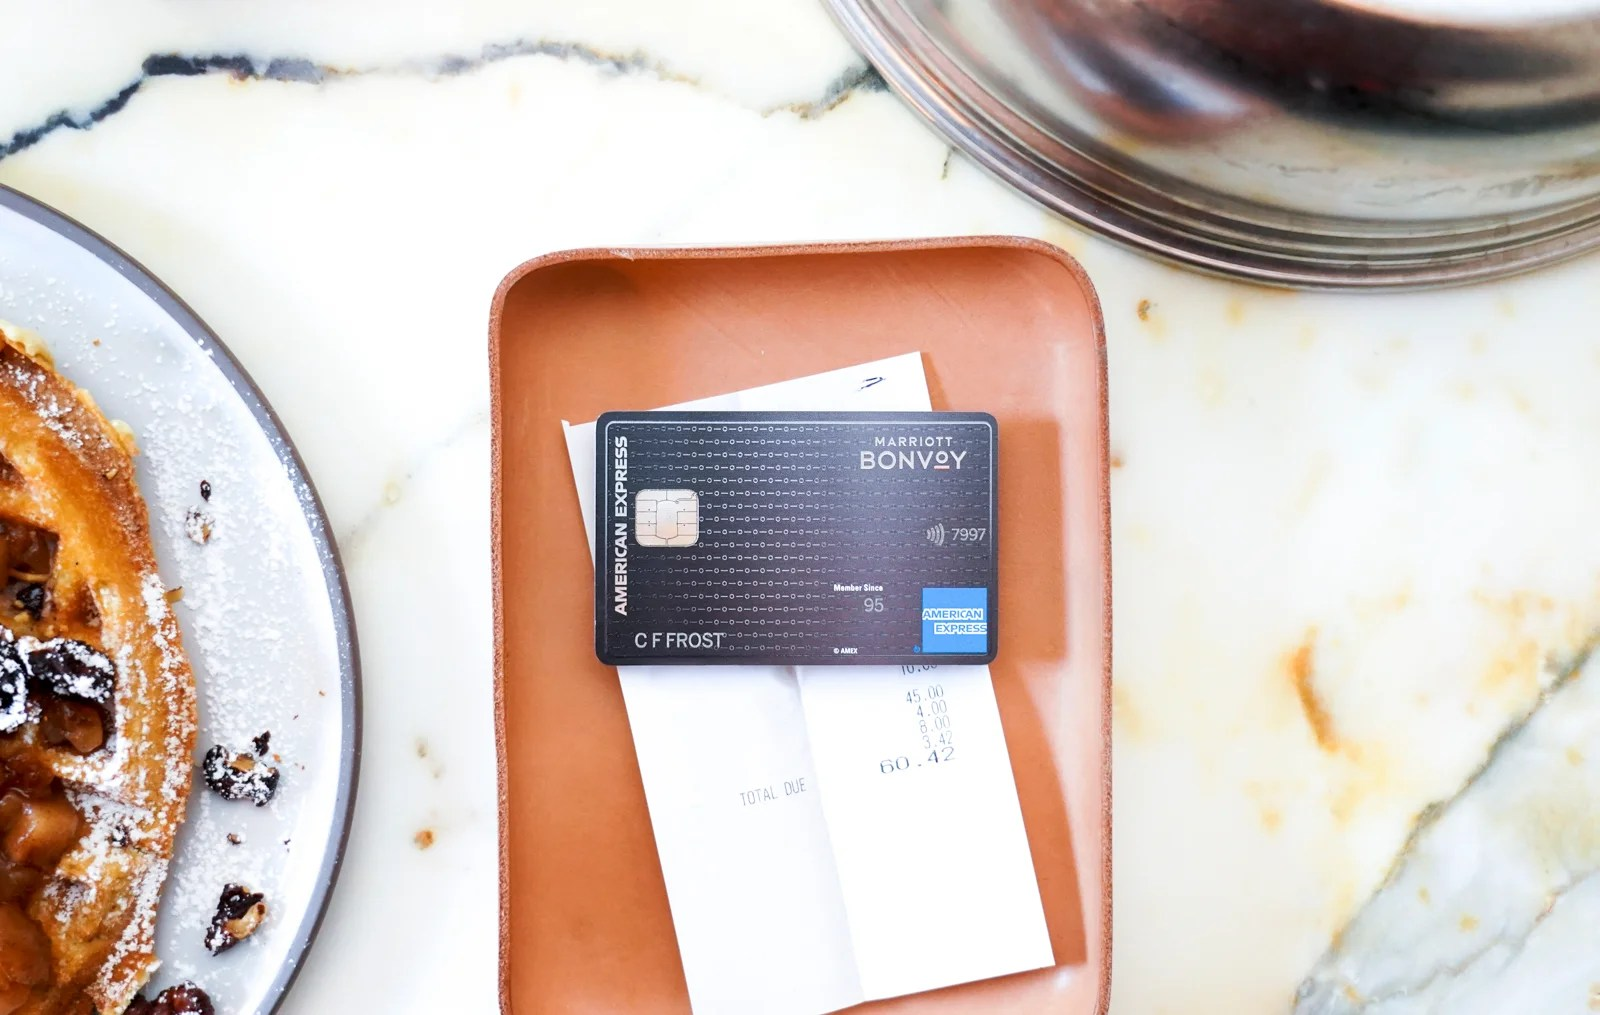 Guide to the Amex Marriott Bonvoy Brilliant $10 credit - The